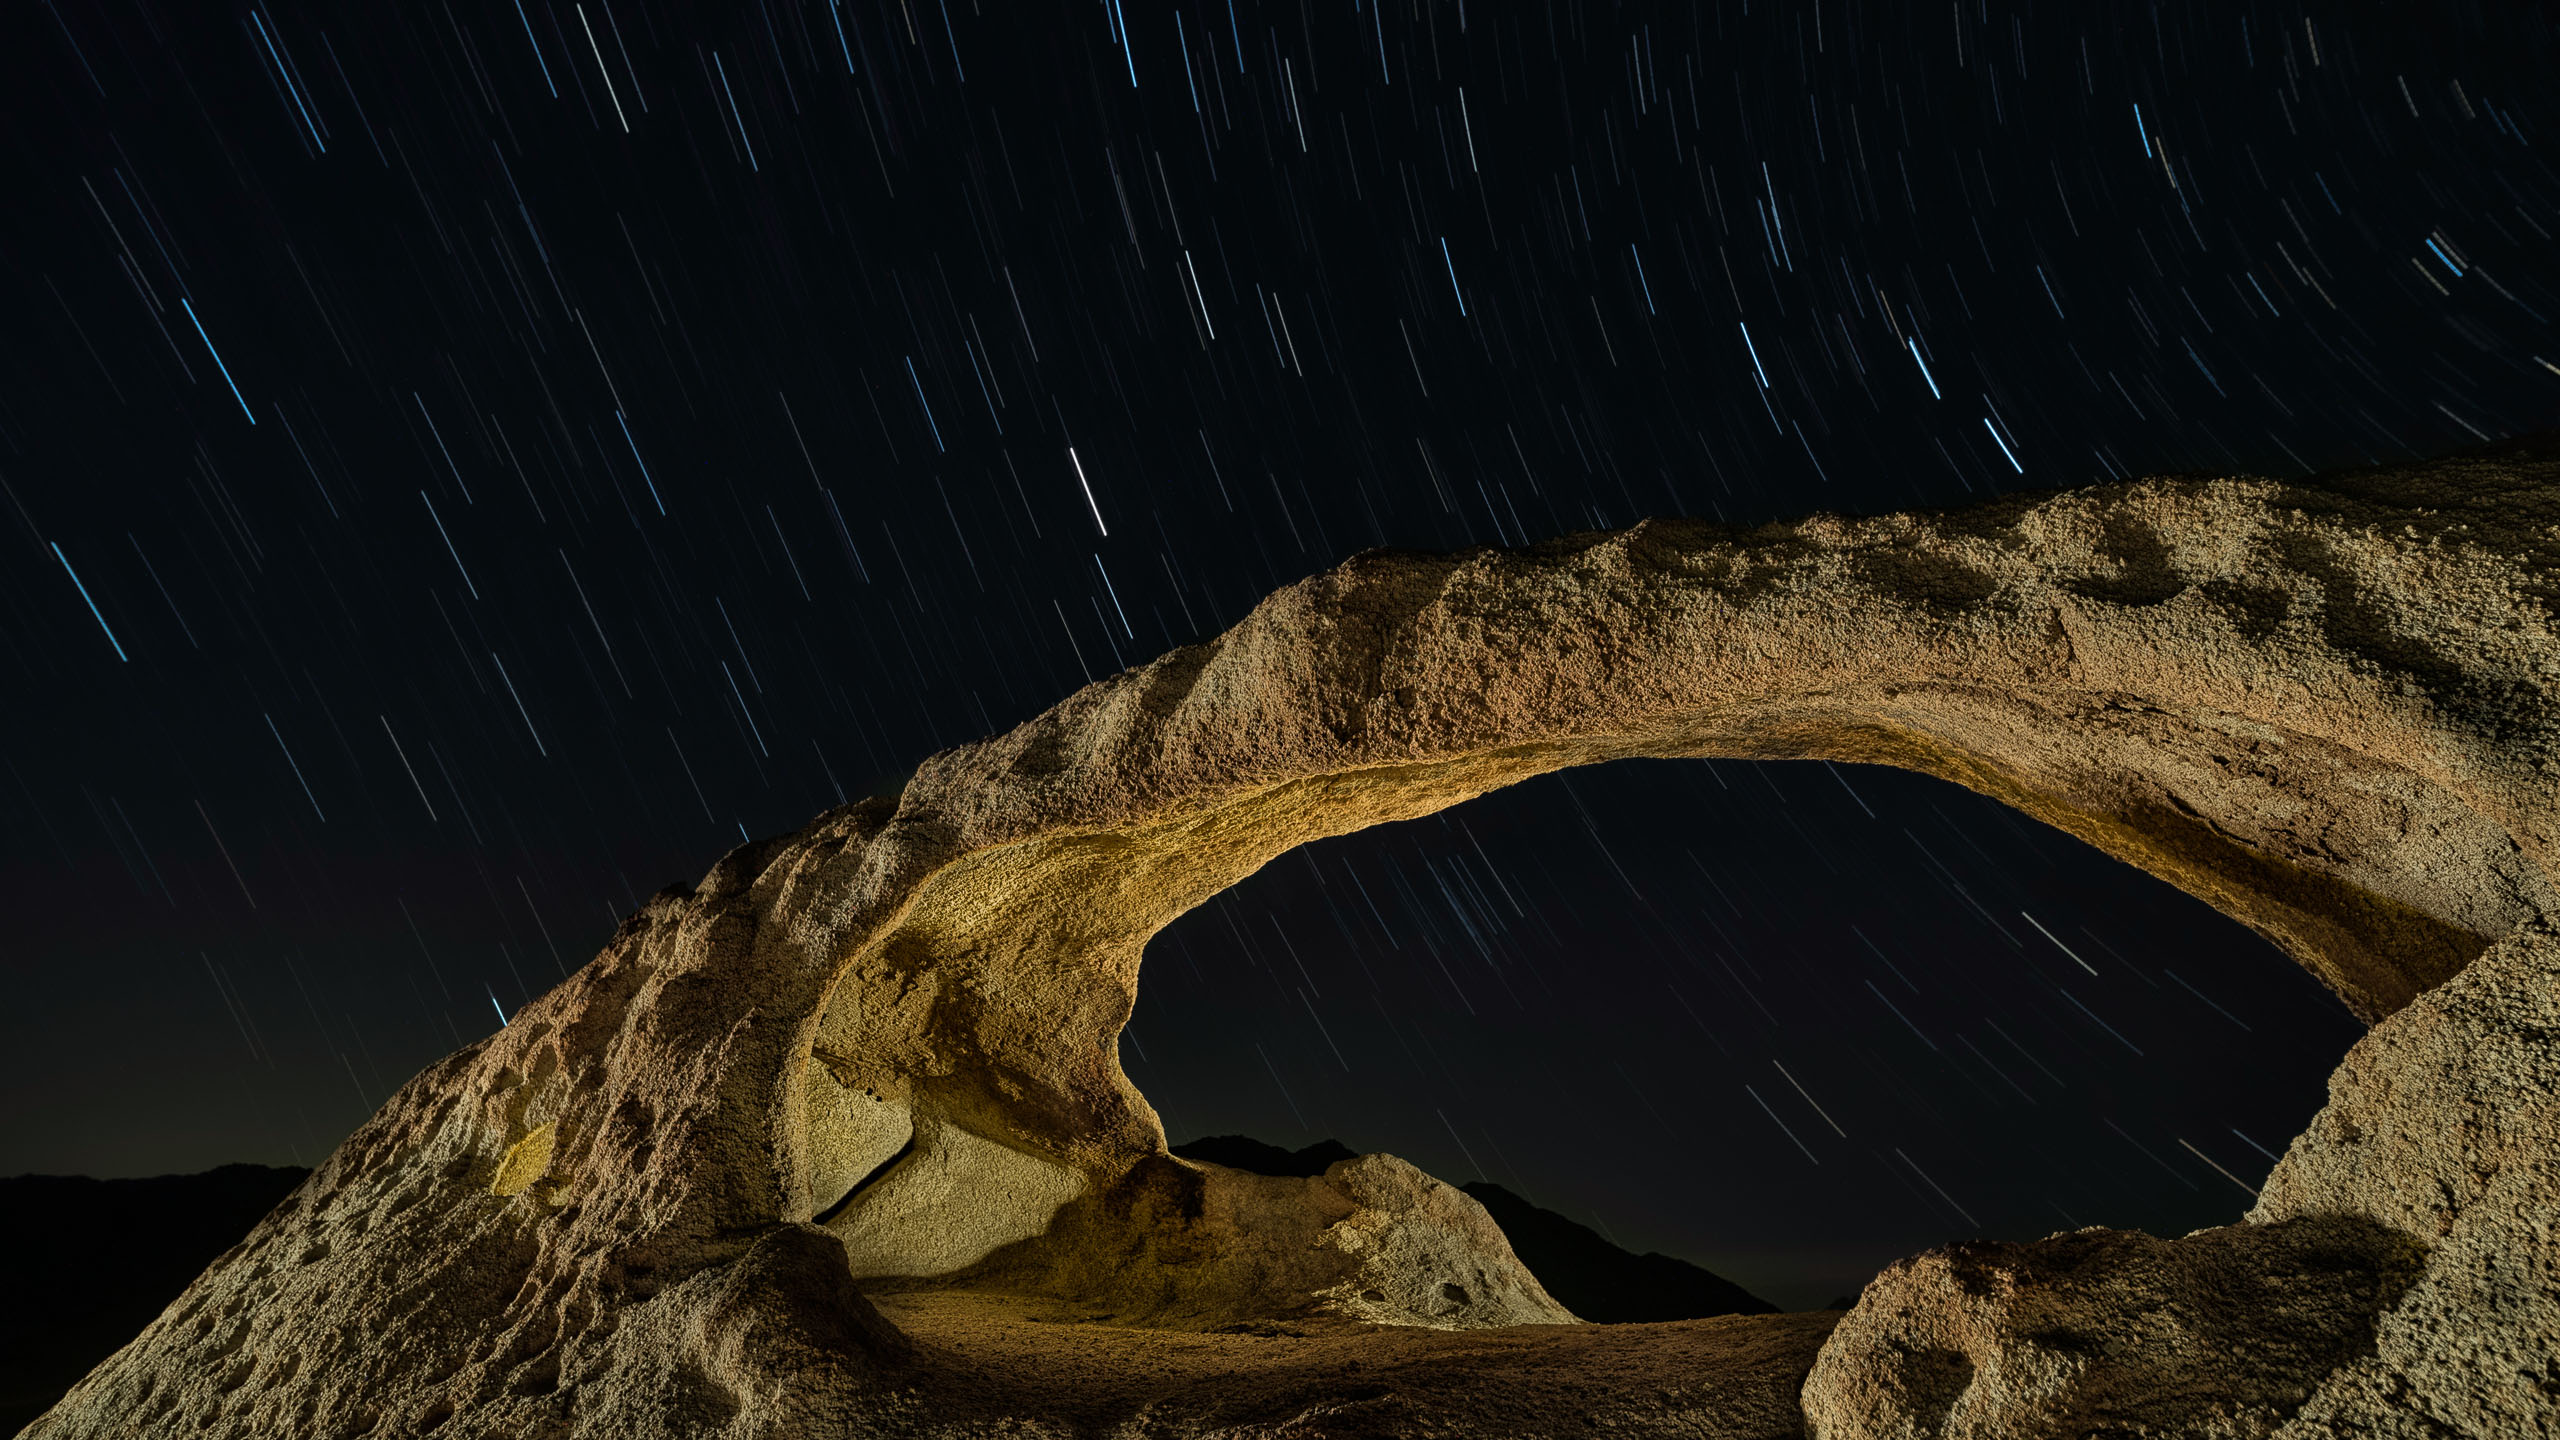 6364_kenlee_ojo-oro-arch_200517_0246_21mtotal_each3mf63iso400__backside-startrails_PHOTOFOCUS HEADER